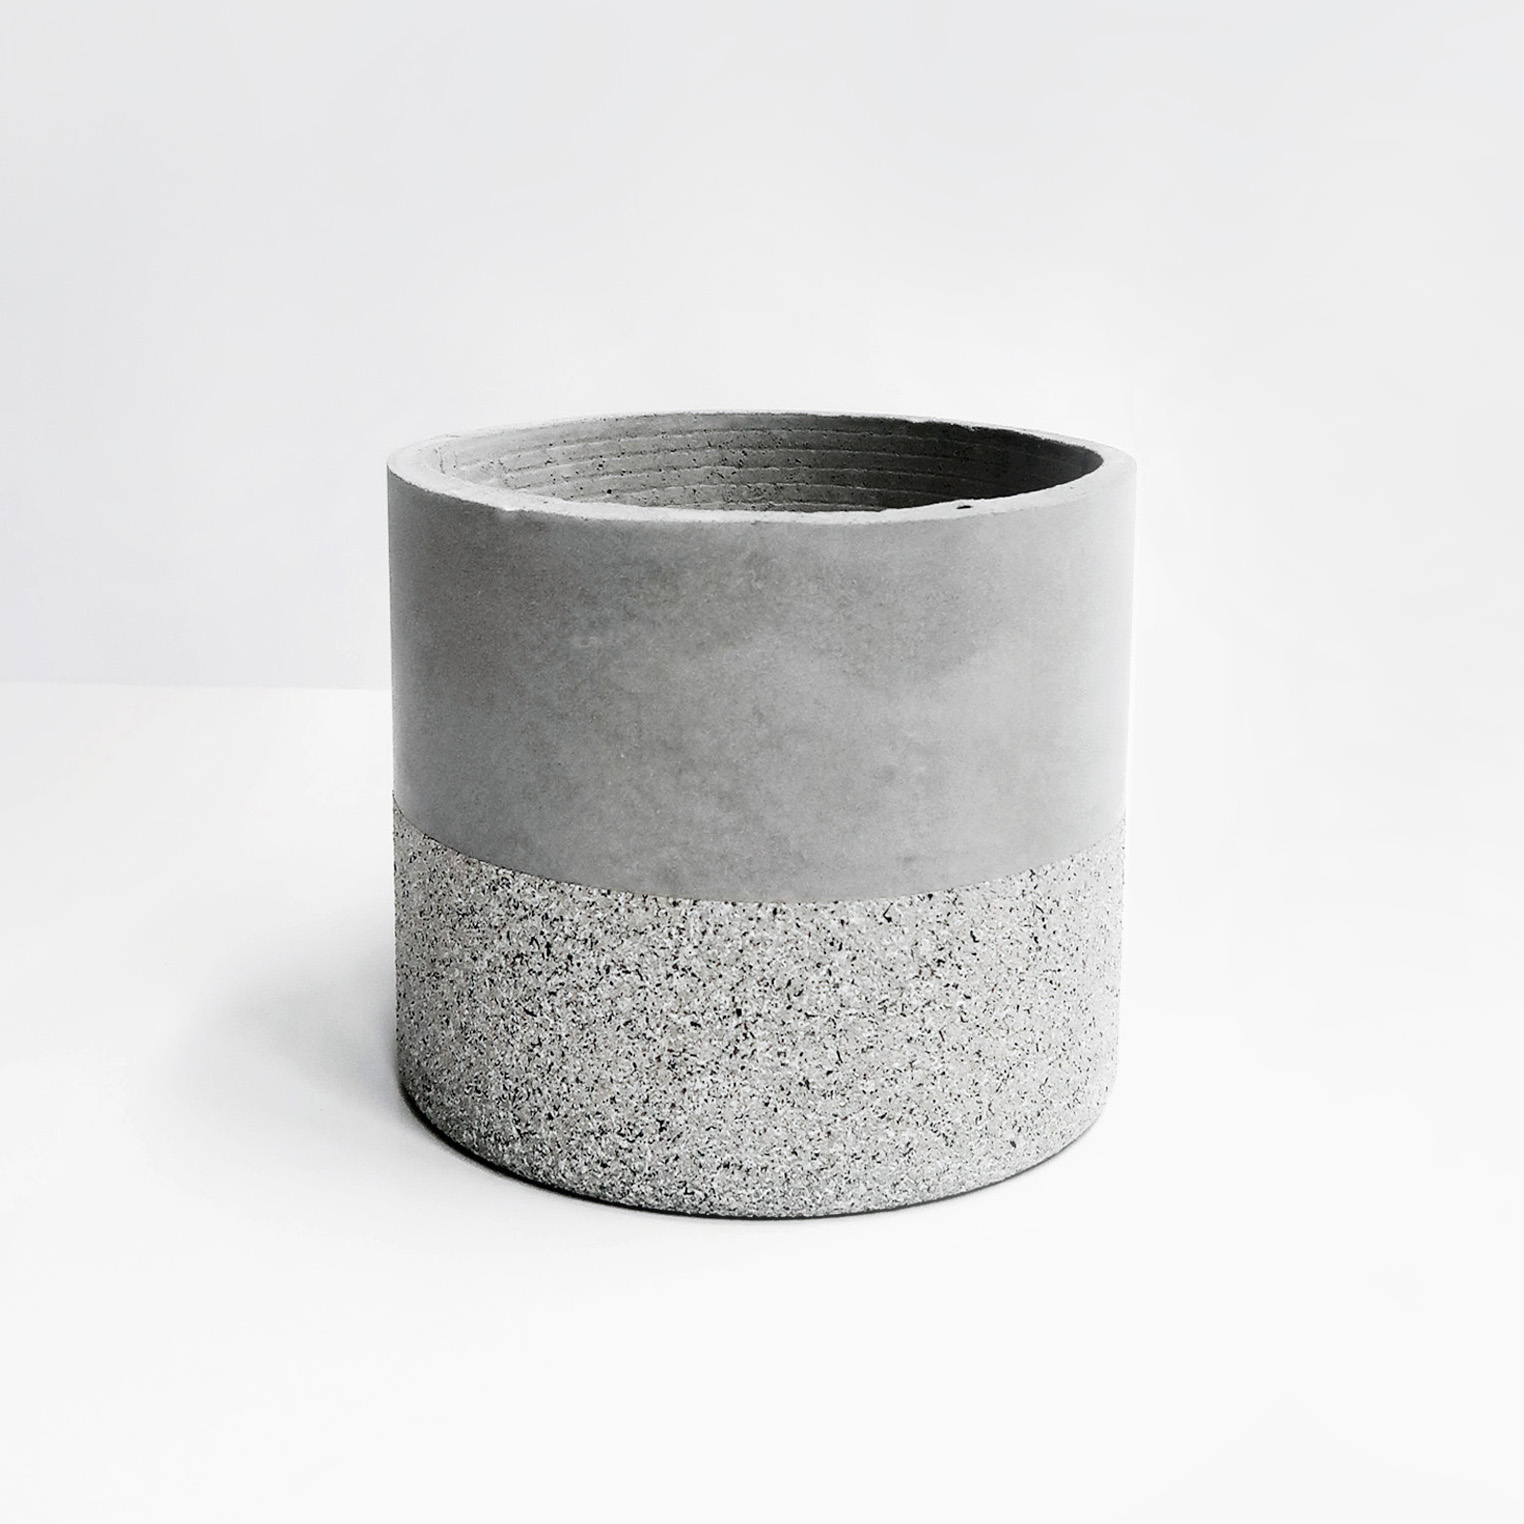 GRANITE 花崗岩深圓水泥盆器 / Deep cylinder concrete pot